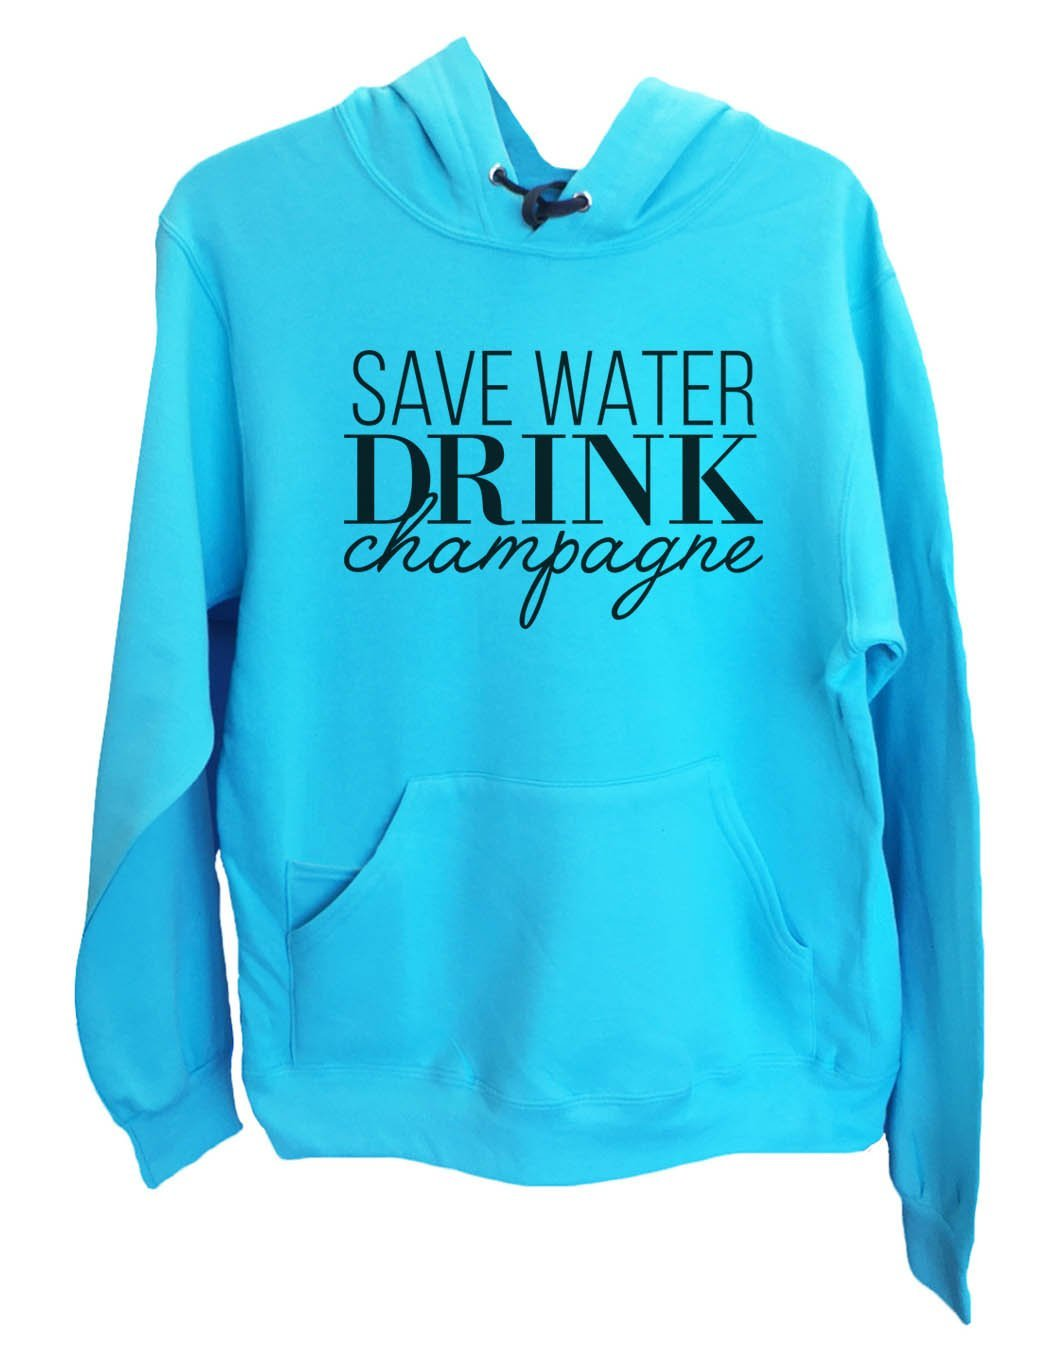 UNISEX HOODIE - Save Water Drink Champagne - FUNNY MENS AND WOMENS HOODED SWEATSHIRTS - 2145 Funny Shirt Small / Turquoise